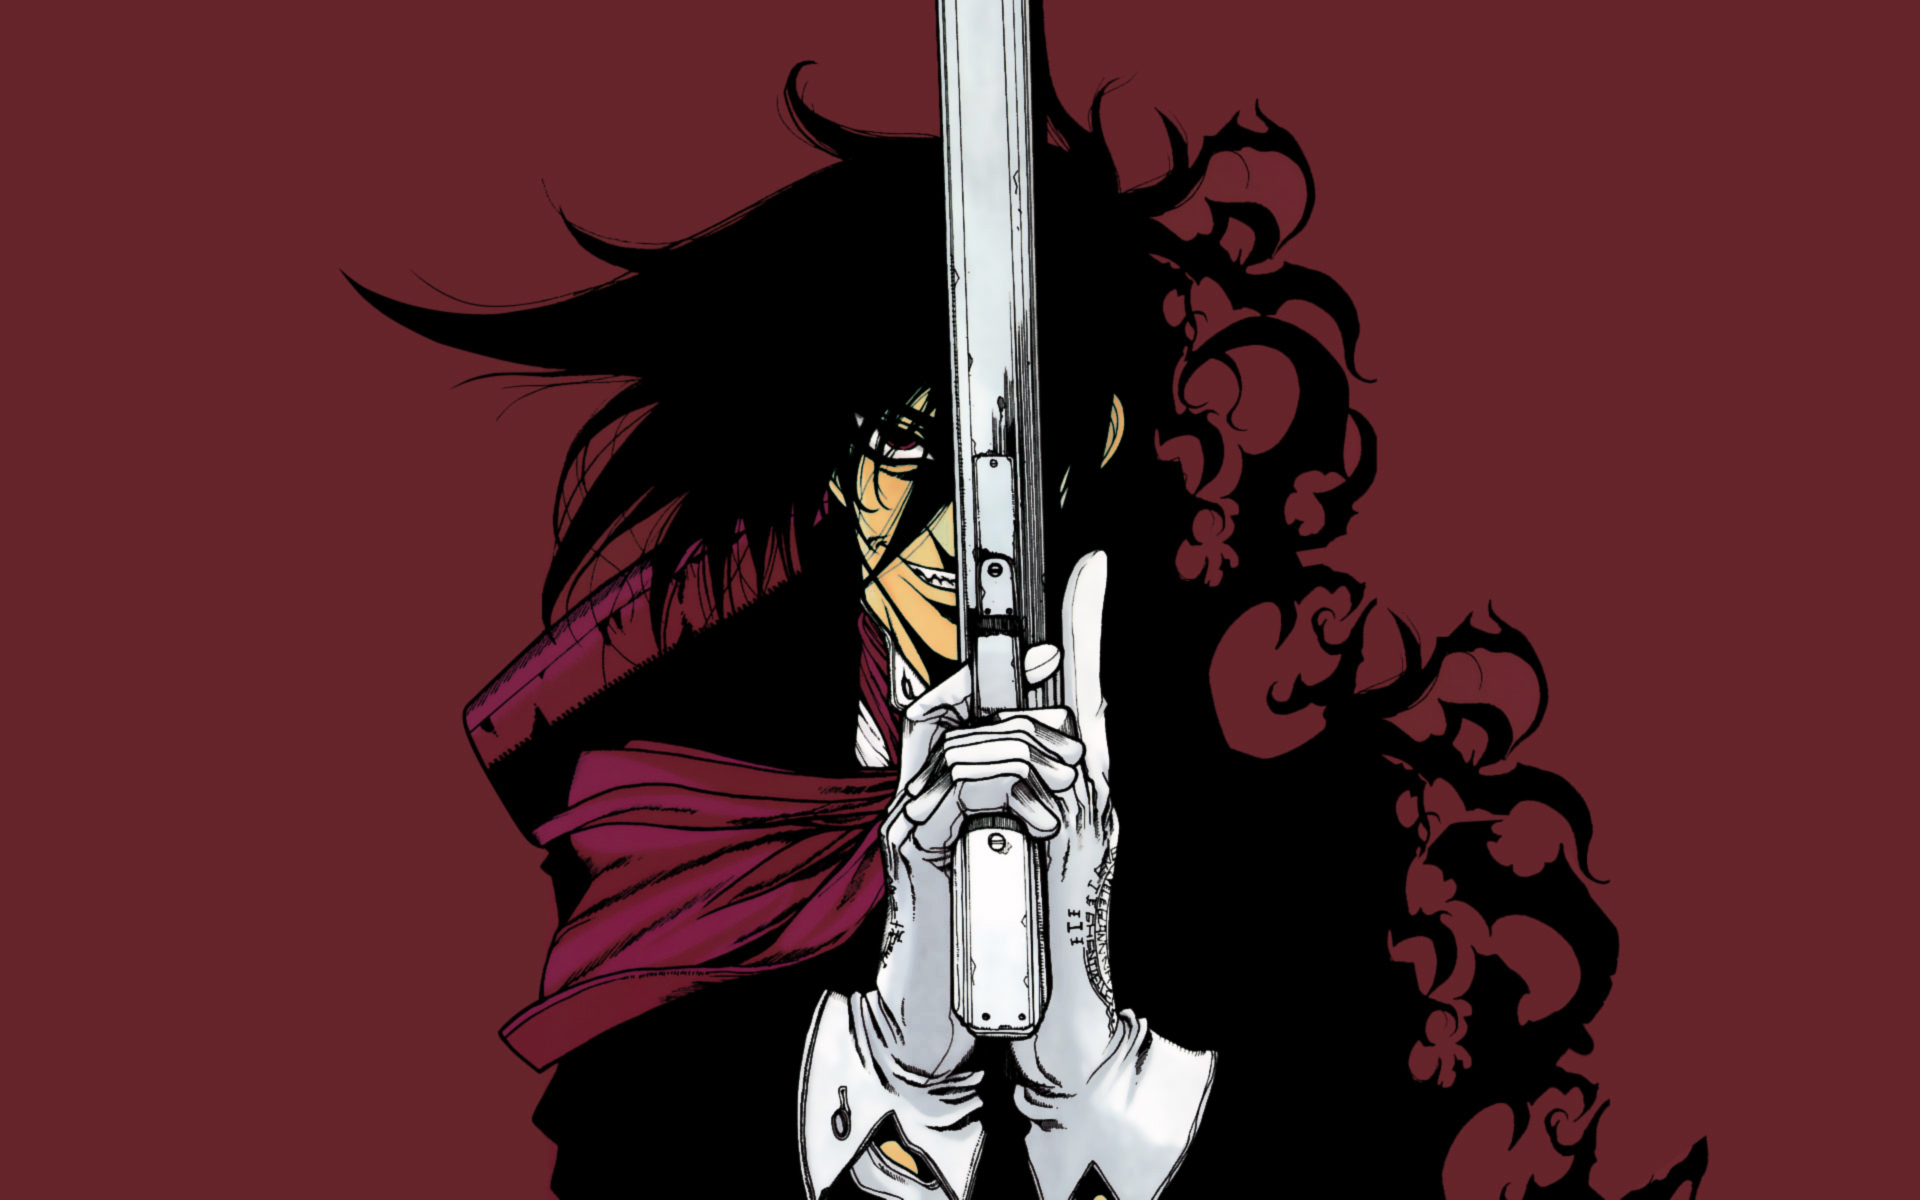 Hellsing hd wallpaper background image 1920x1200 id - Anime hellsing wallpaper ...